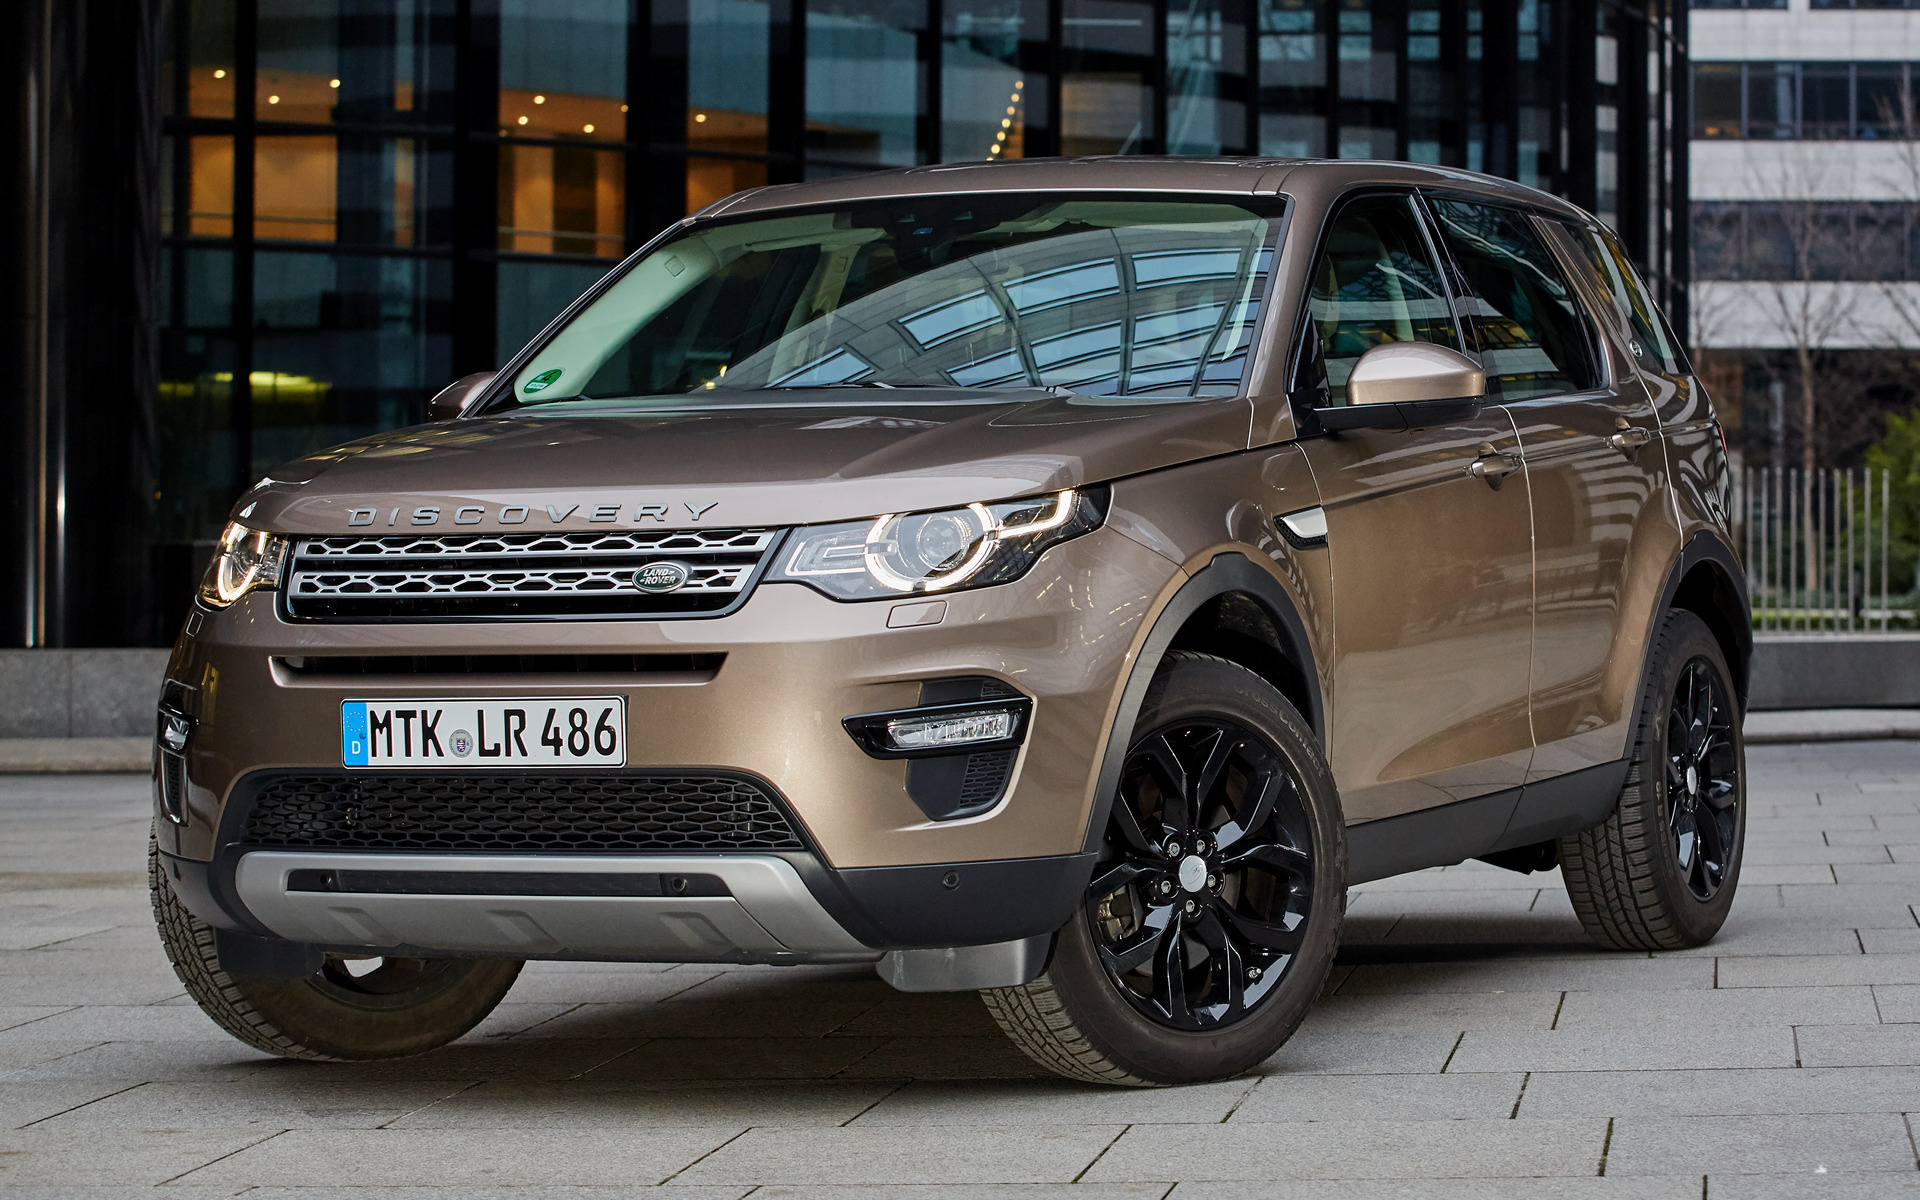 Range Rover Discovery Sport >> 2015 Land Rover Discovery Sport Black Design Pack - Wallpapers and HD Images | Car Pixel